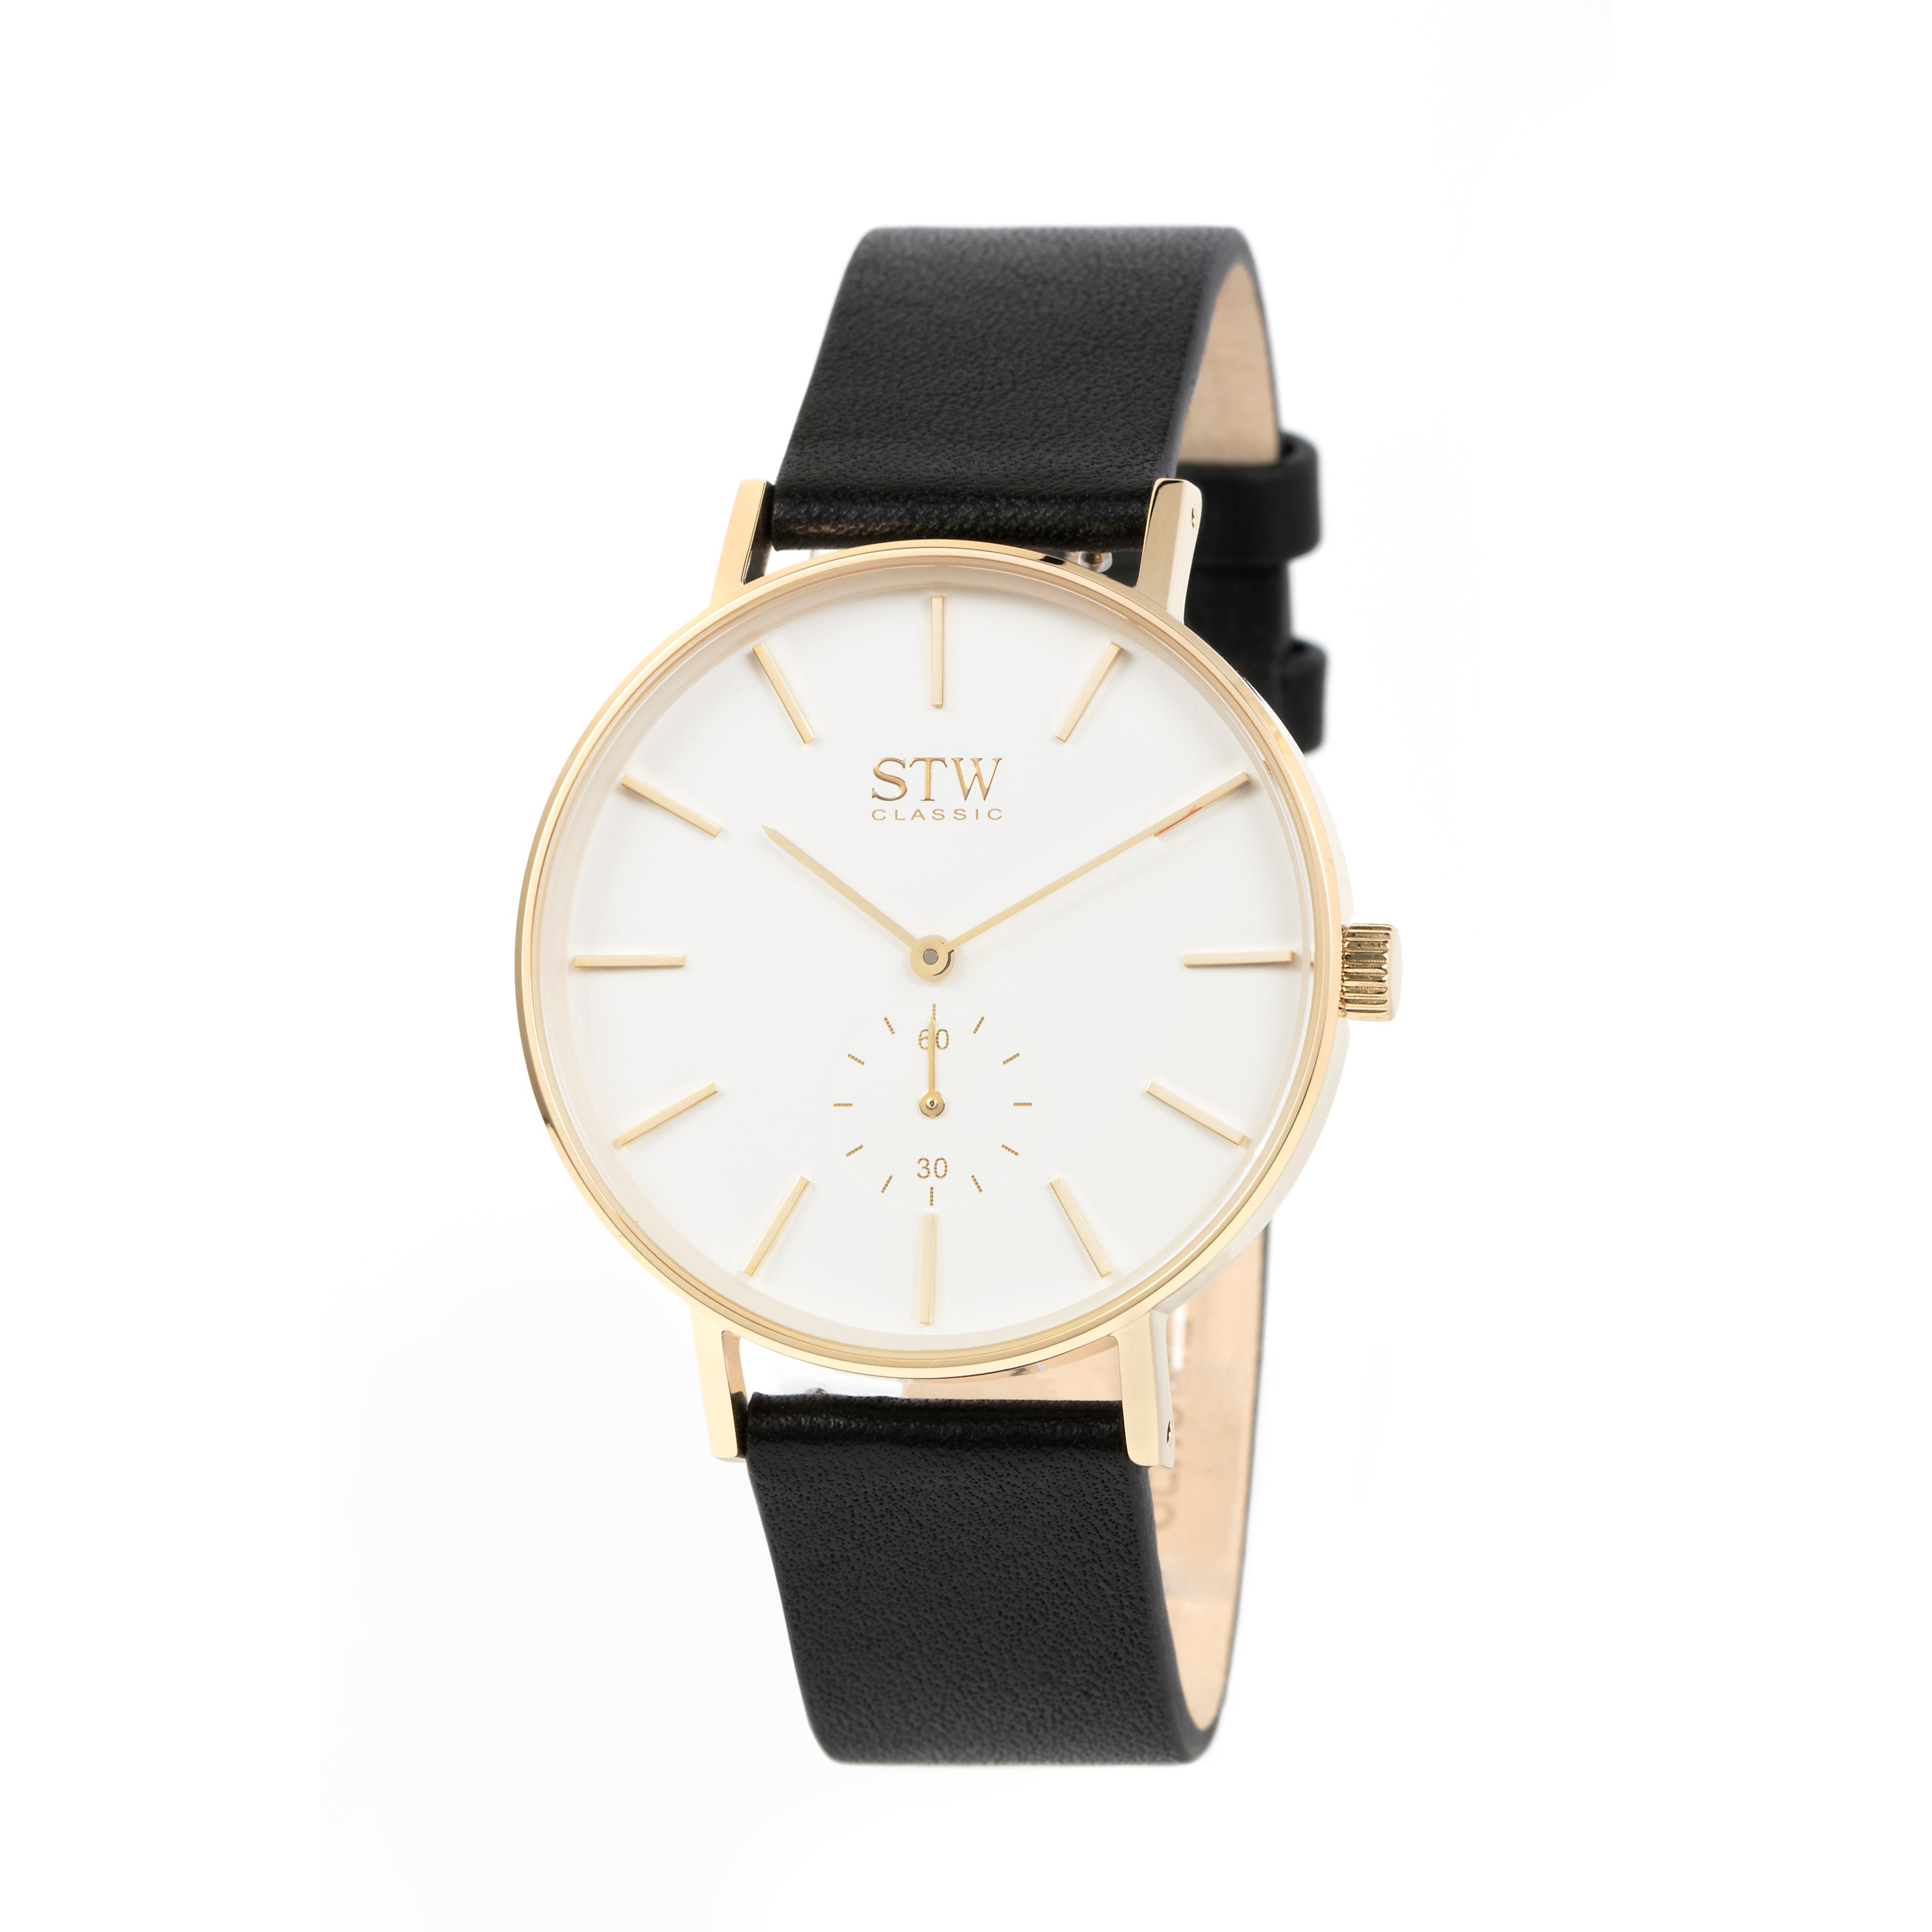 THE CLASSIC -  WHITE DIAL WITH BLACK LEATHER STRAP WATCH